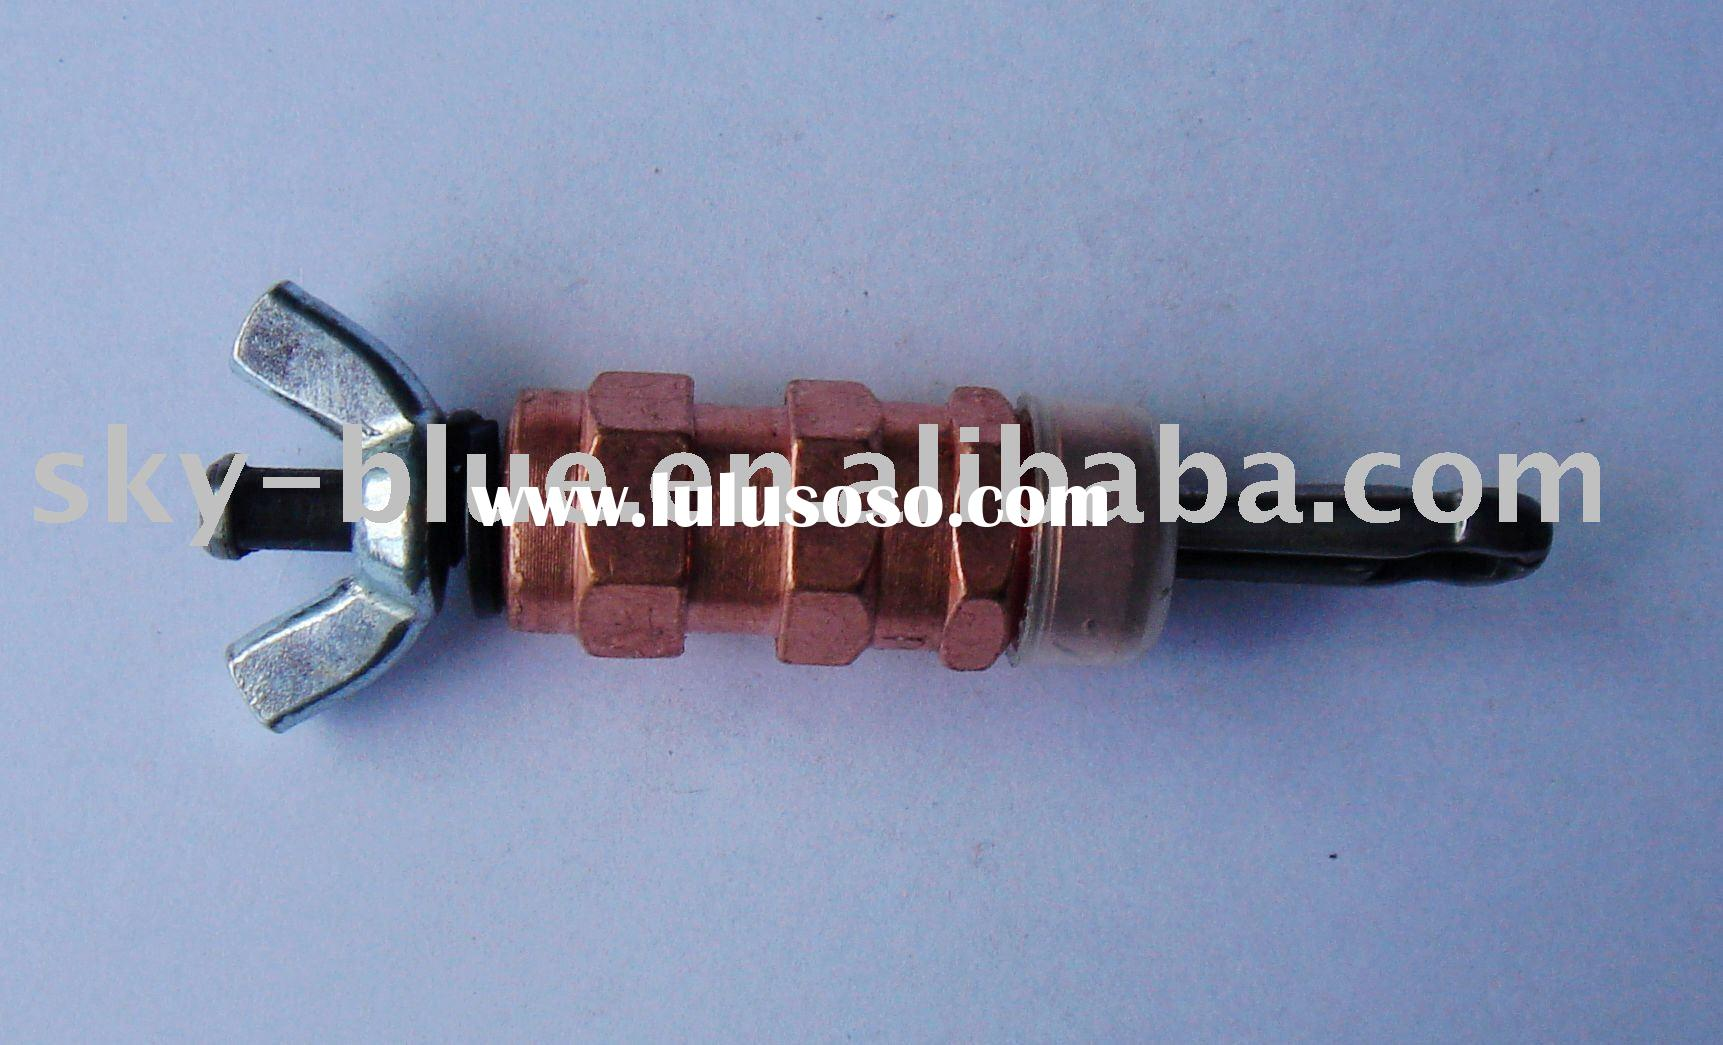 Wing Nut Fastener / Temporary Fasteners